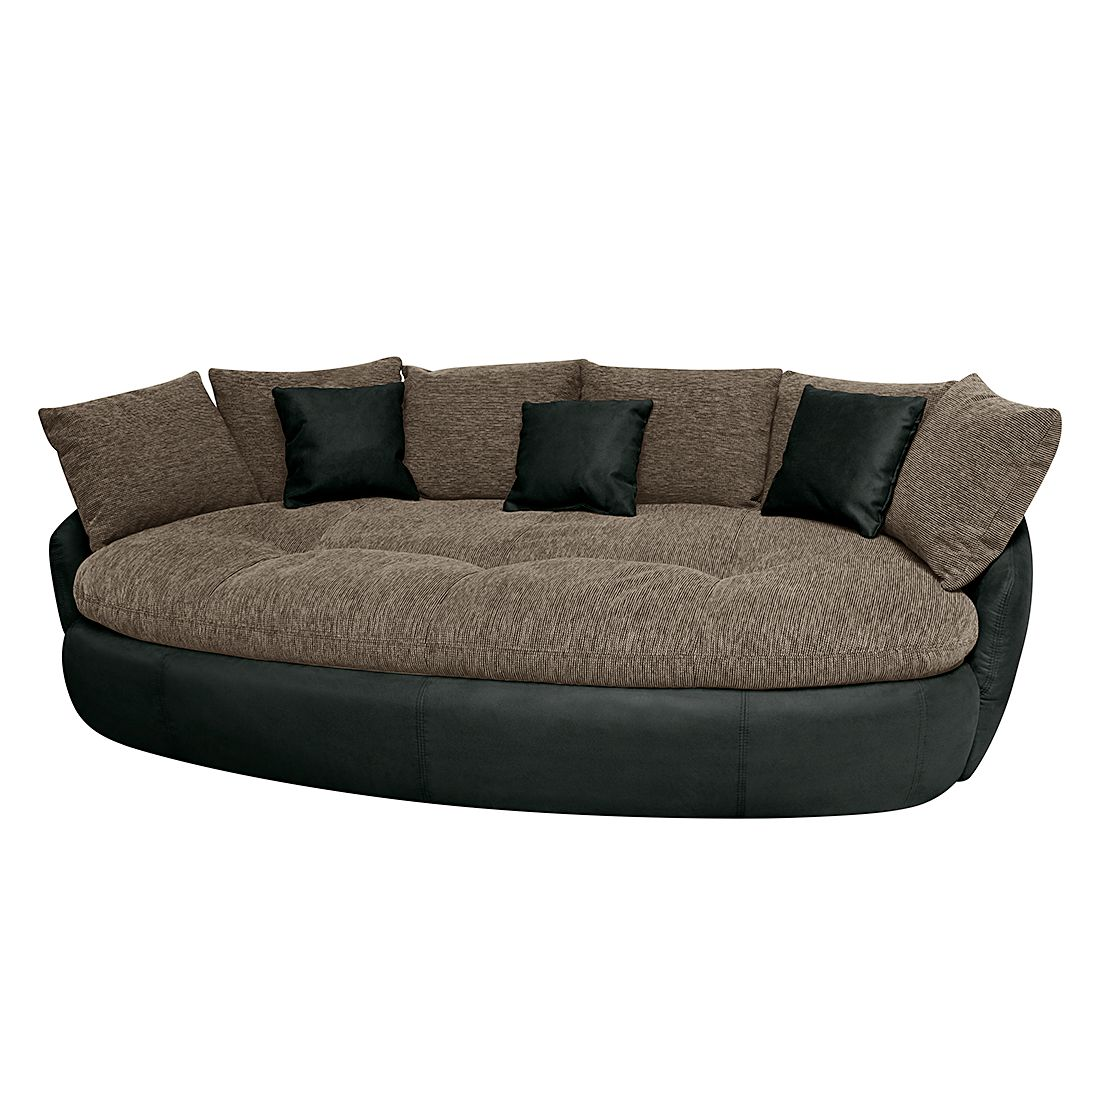 Big Sofa Kolonialstil Luxury Big Sofa Sissi Kolonialstil Xxl Mega Big Sofa Rund Big Sofa Hawana Rund Im Kolonialstil Couch